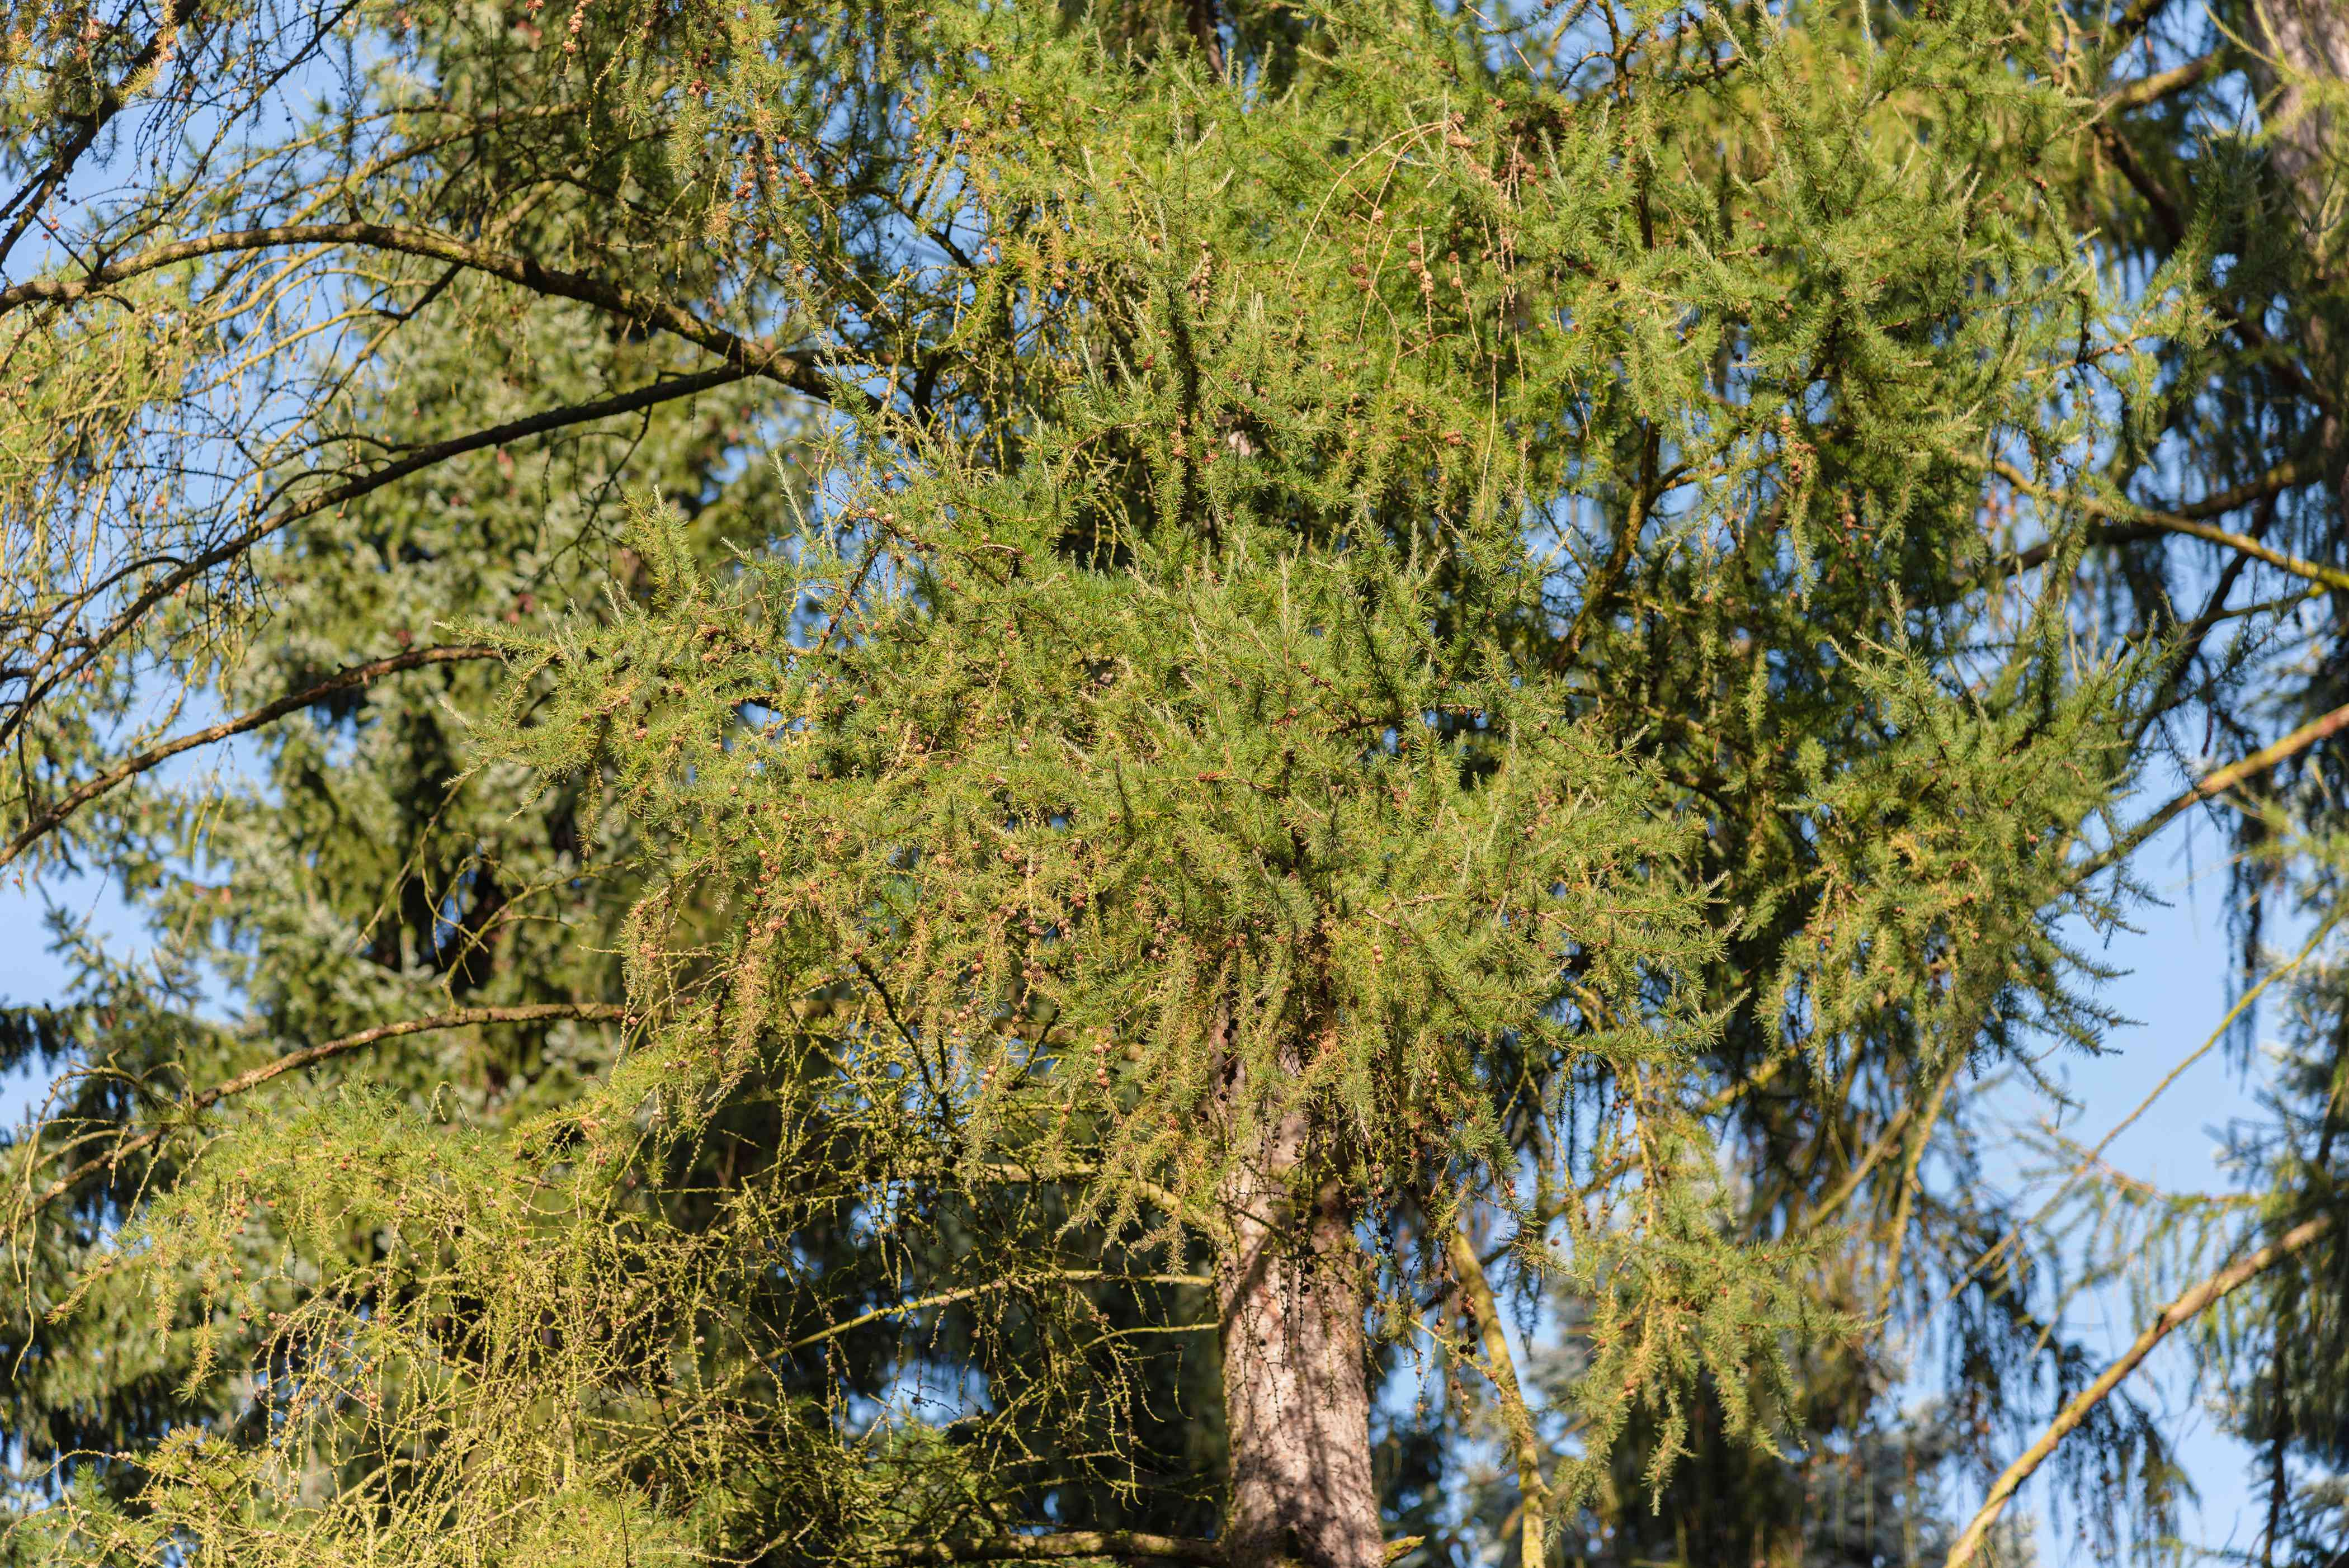 Tamarack tree with densely-covered branches of light green needles in sunlight